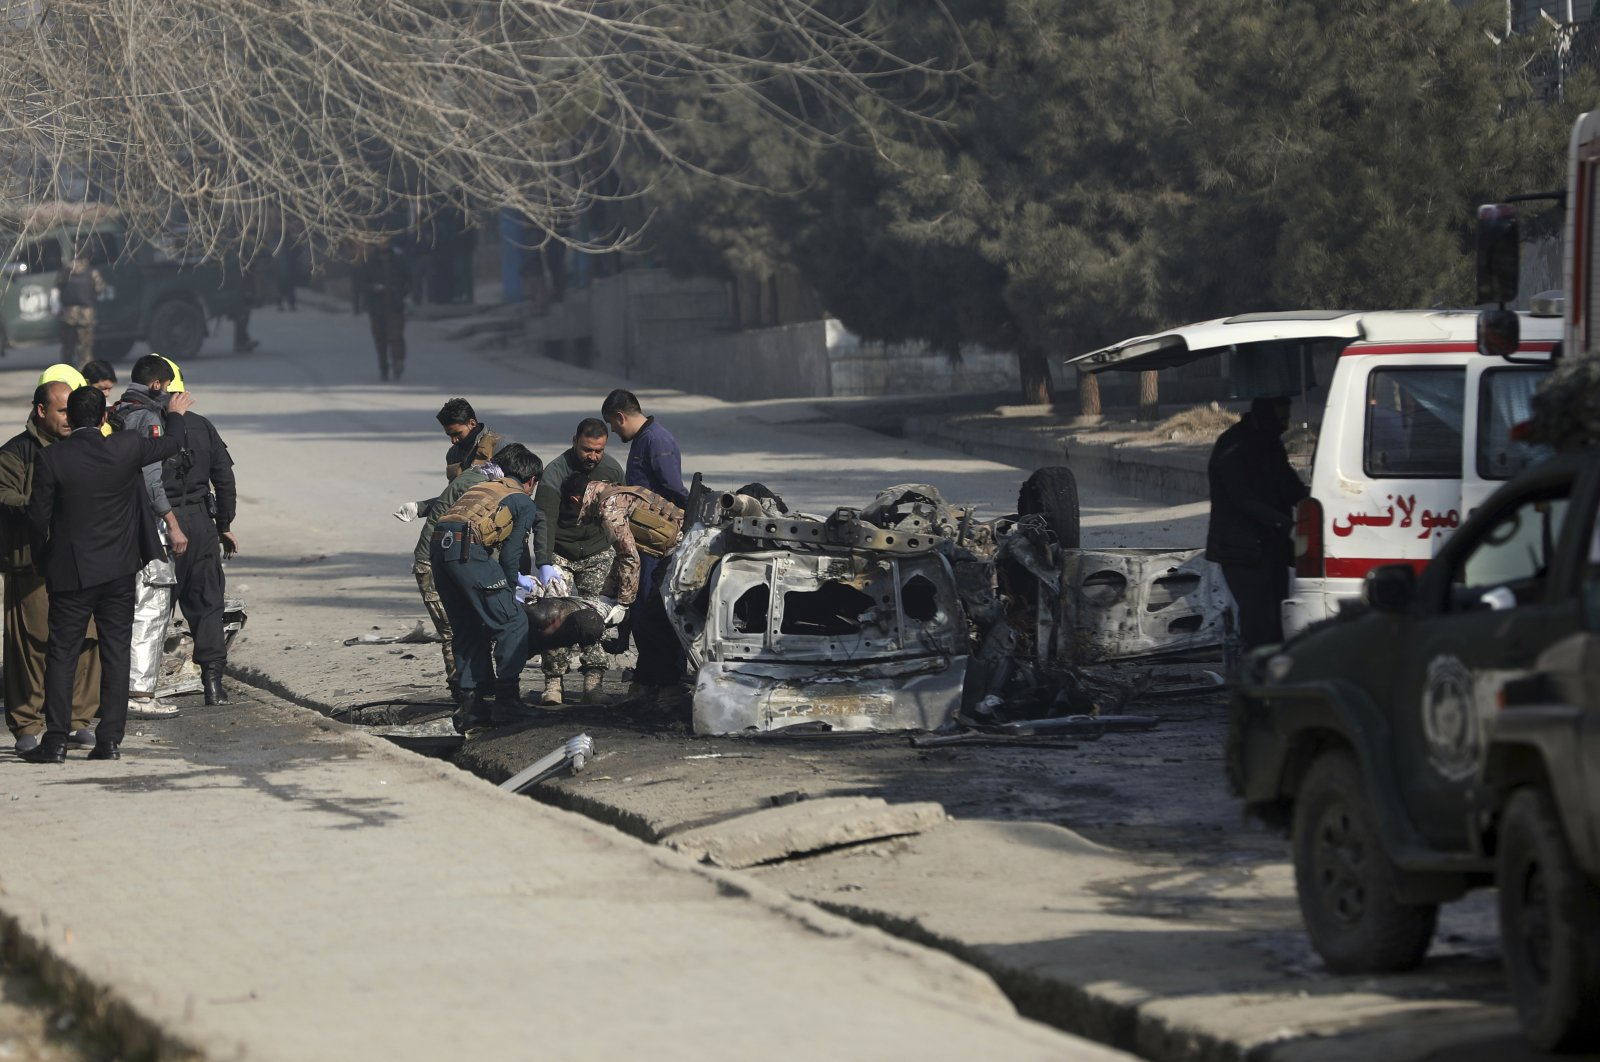 Afghan security officers carry the body of a man from the site of a bomb attack in Kabul, Afghanistan, Jan. 10, 2021. (AP Photo)